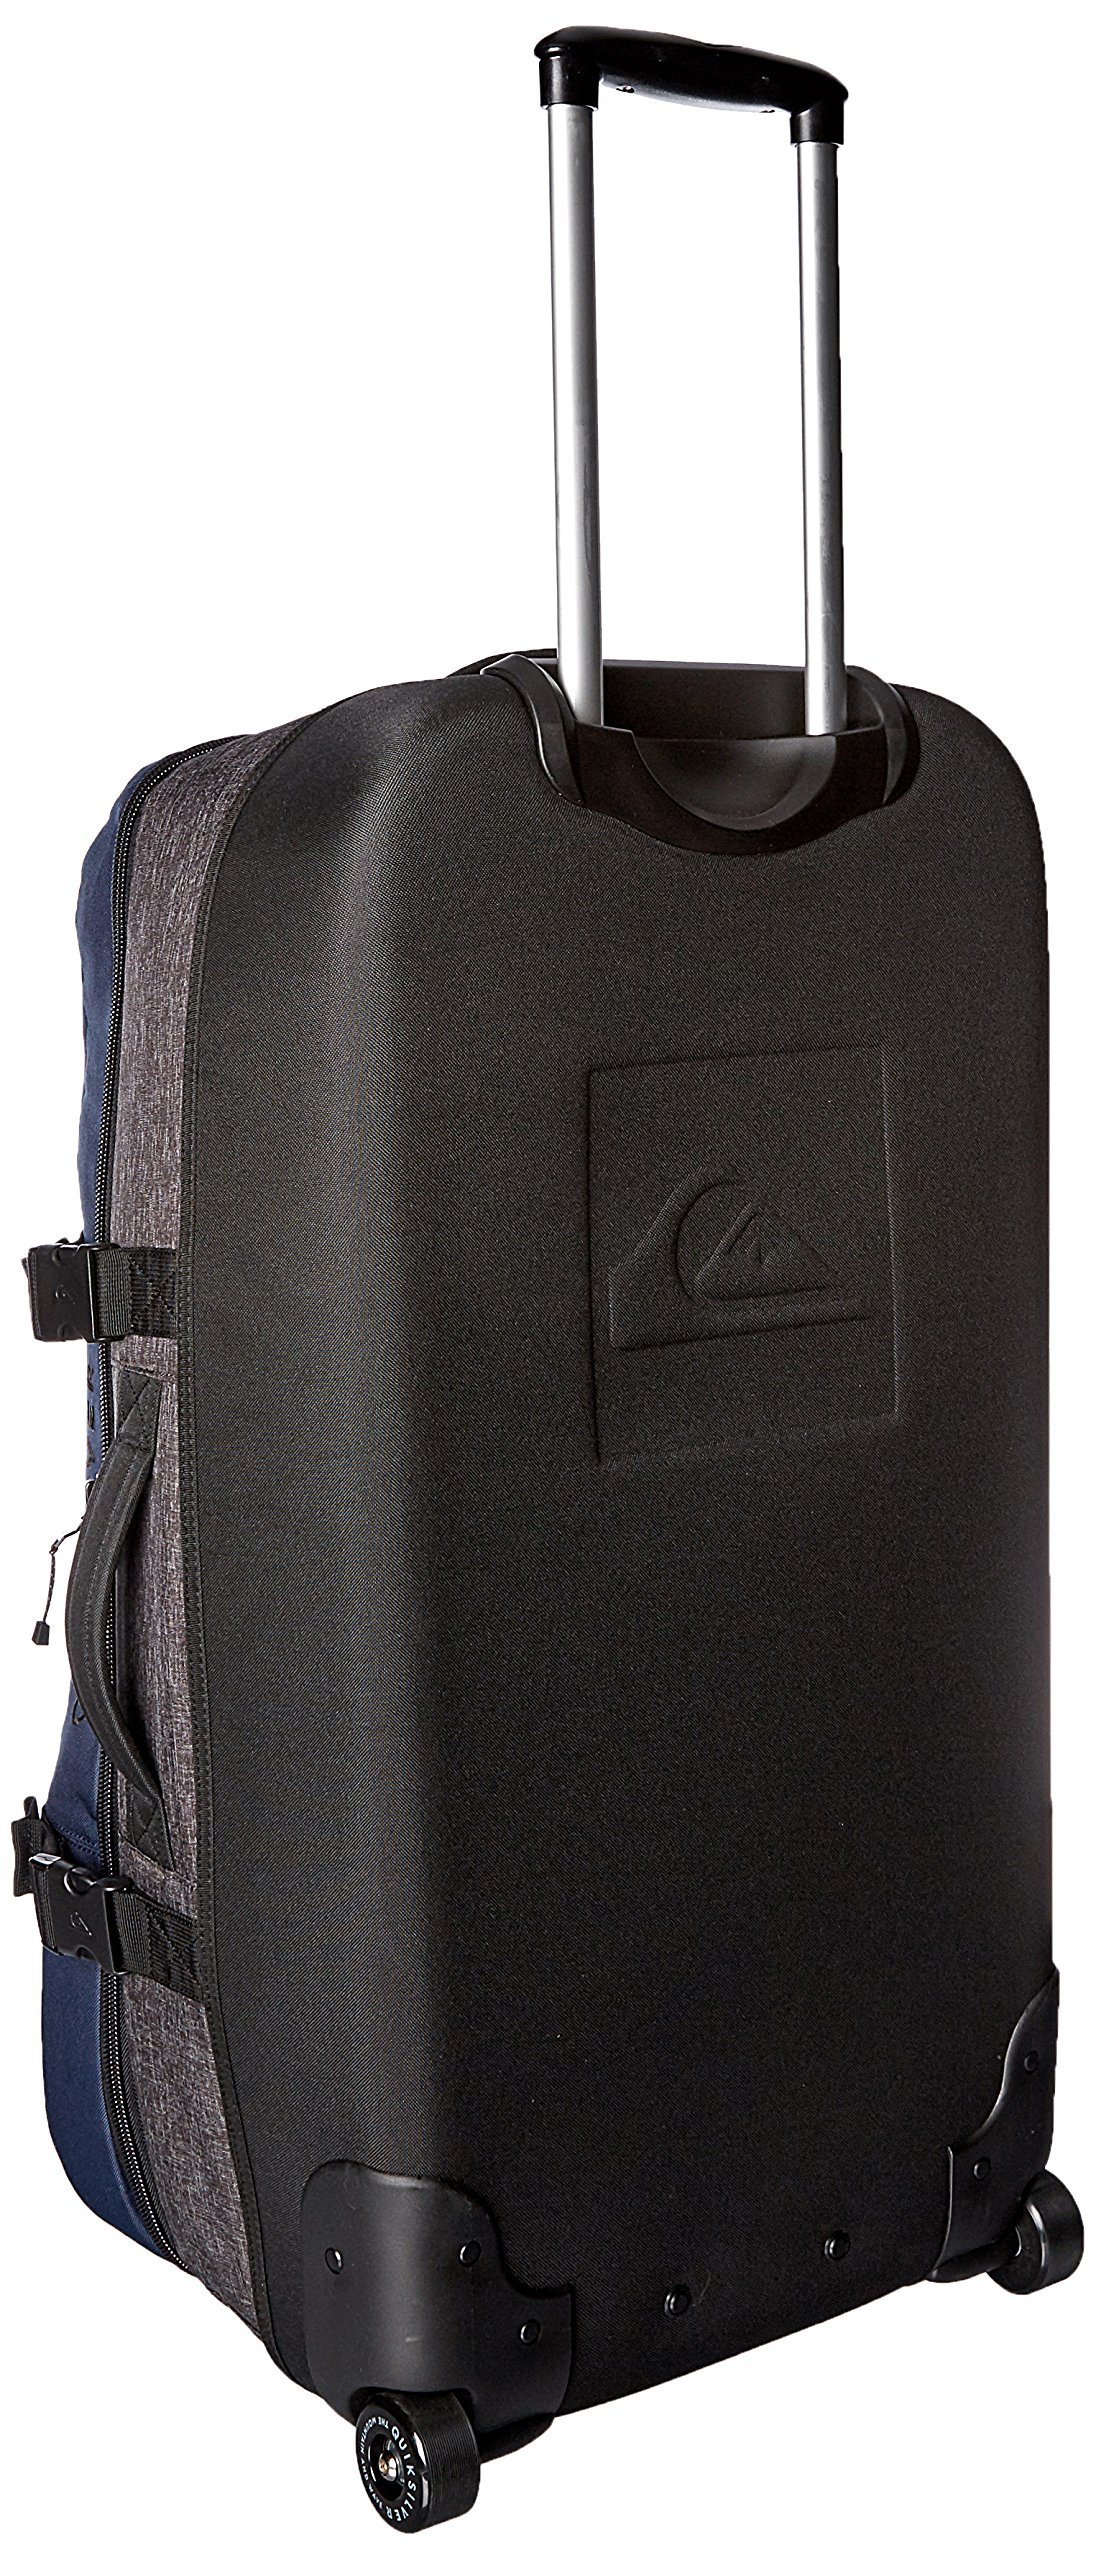 Quiksilver Young Men's Reach Luggage Roller Bag Accessory, -navy blazer, One Size by Quiksilver (Image #2)